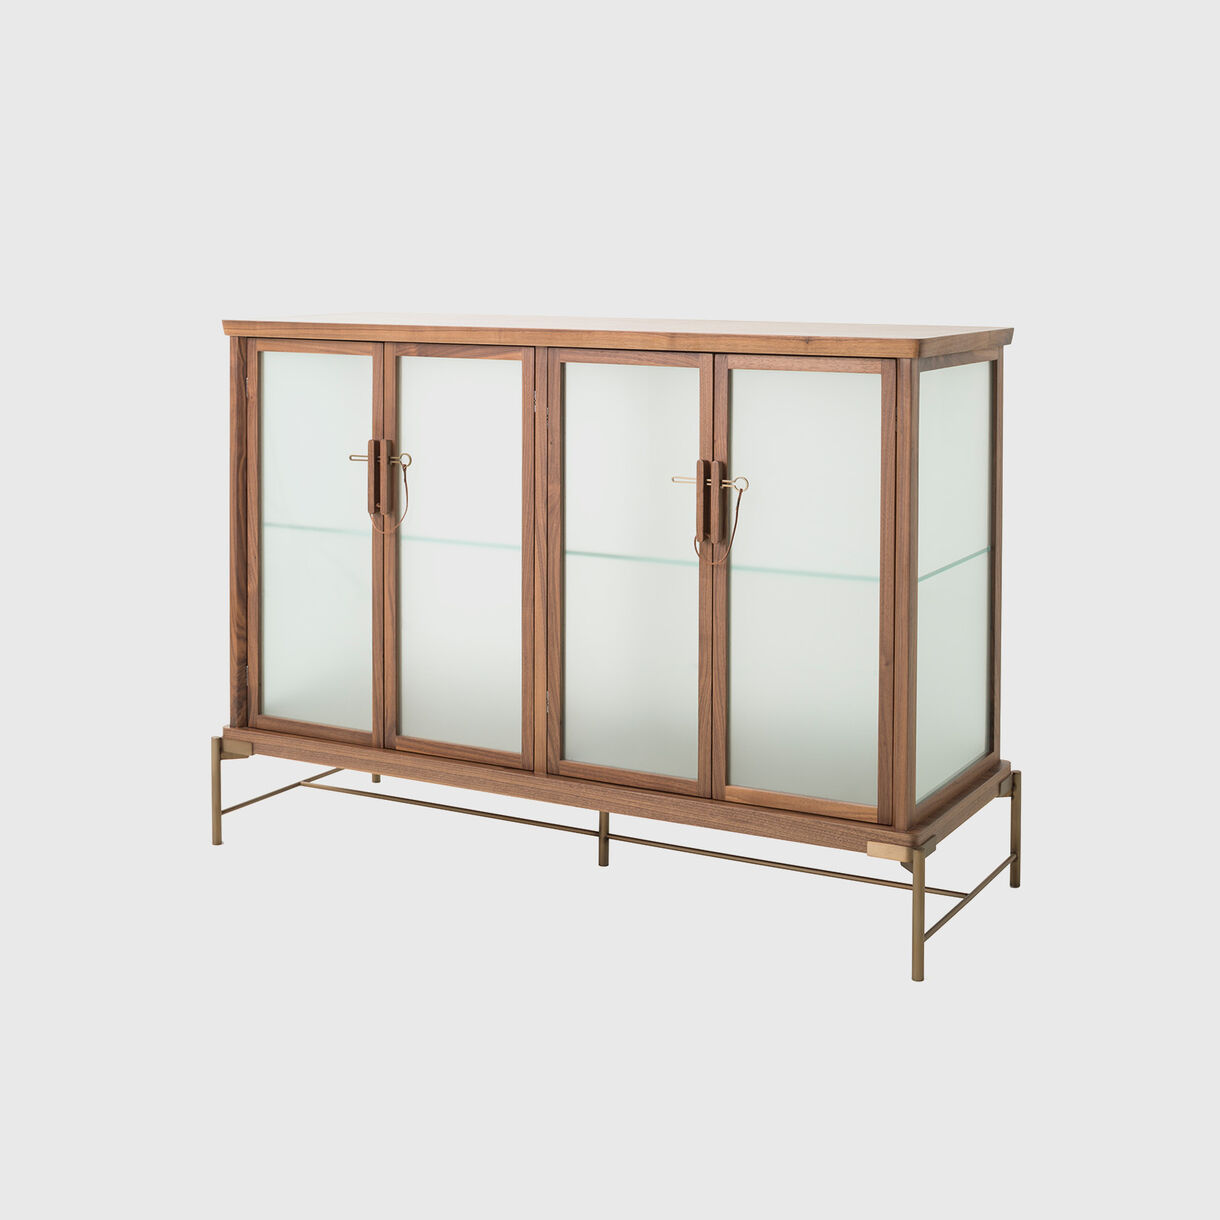 Dowry Cabinet I, Frosted Glass